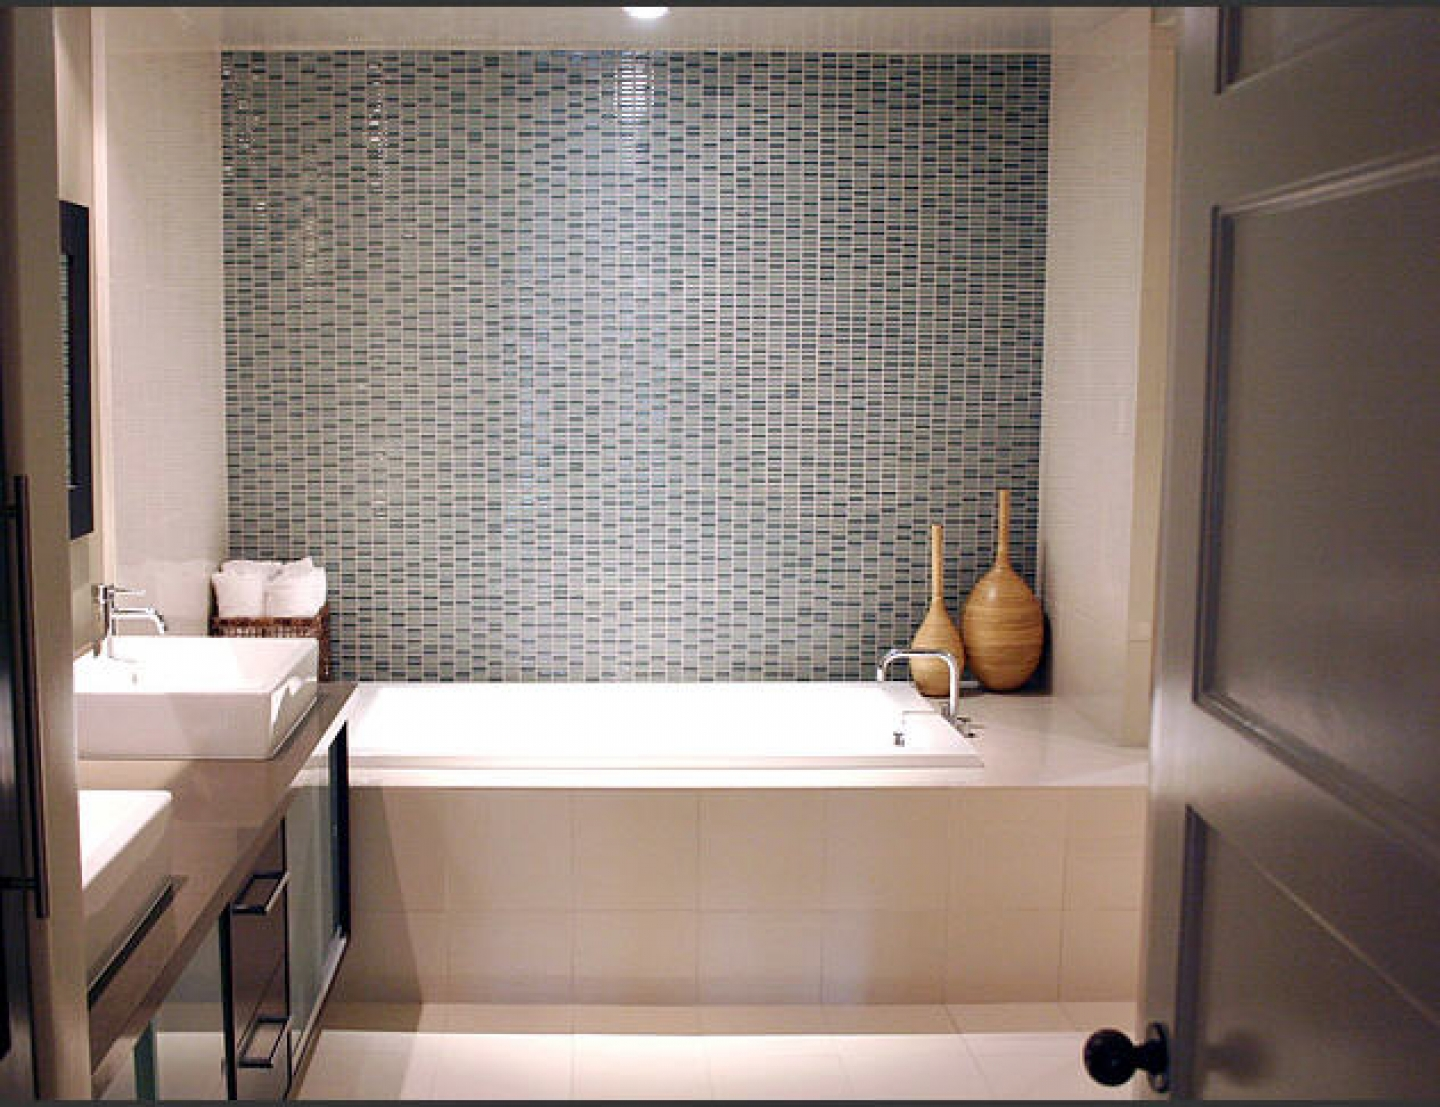 Bathroom ideas for small space for Small bathroom ideas with tub